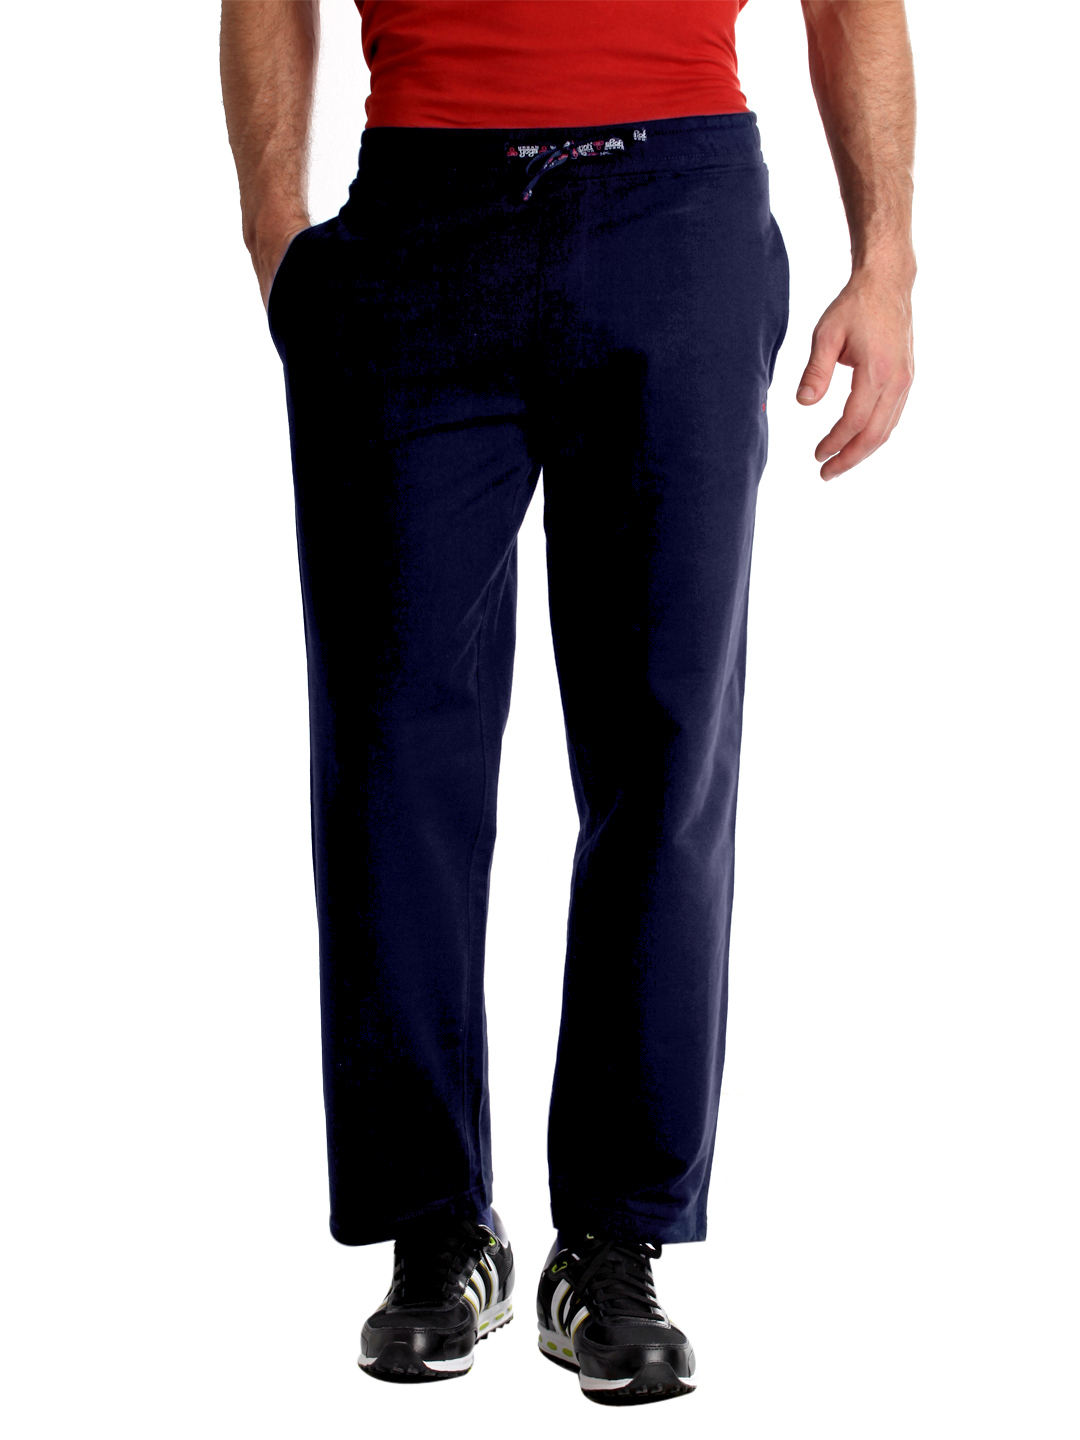 Urban Yoga Men Navy Blue Track Pants